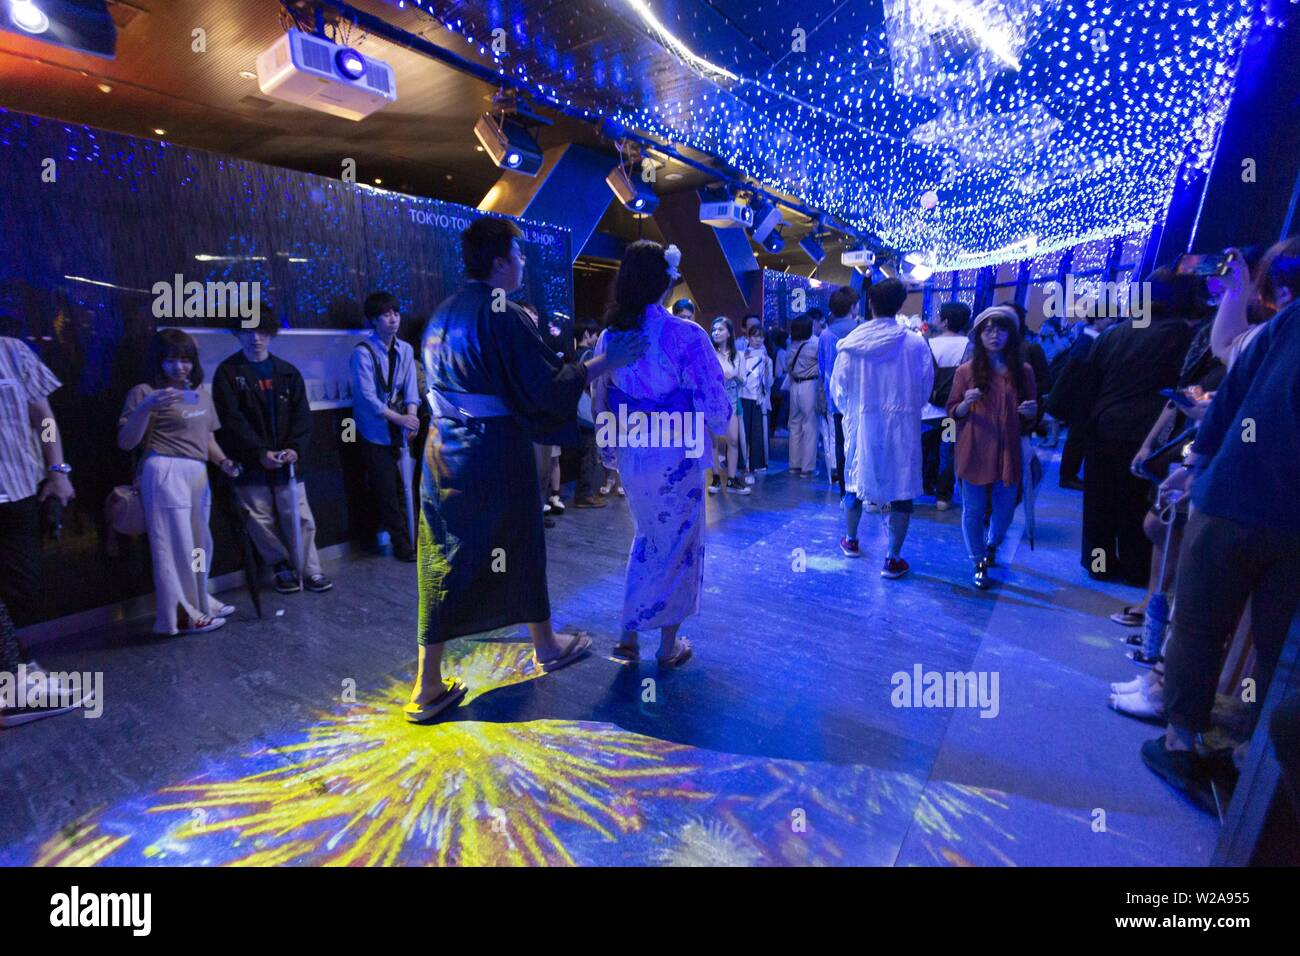 Tokyo, Japan. 7th July, 2019. Visitors wearing traditional Japanese clothes (Yukata) contemplate the LED lights simulating the Milky Way in commemoration of the festival of Tanabata at Tokyo Tower. Every year, people write their wishes on colorful papers (Tanzaku) to hang it on bamboo branches as a tradition of the Tanabata Festival. The annual celebration commemorates the legend of two lovers separated by the Milky Way who only meet once a year on the seventh day of the seventh month. The festival has been held since the Edo era. Credit: Rodrigo Reyes Marin/ZUMA Wire/Alamy Live News - Stock Image